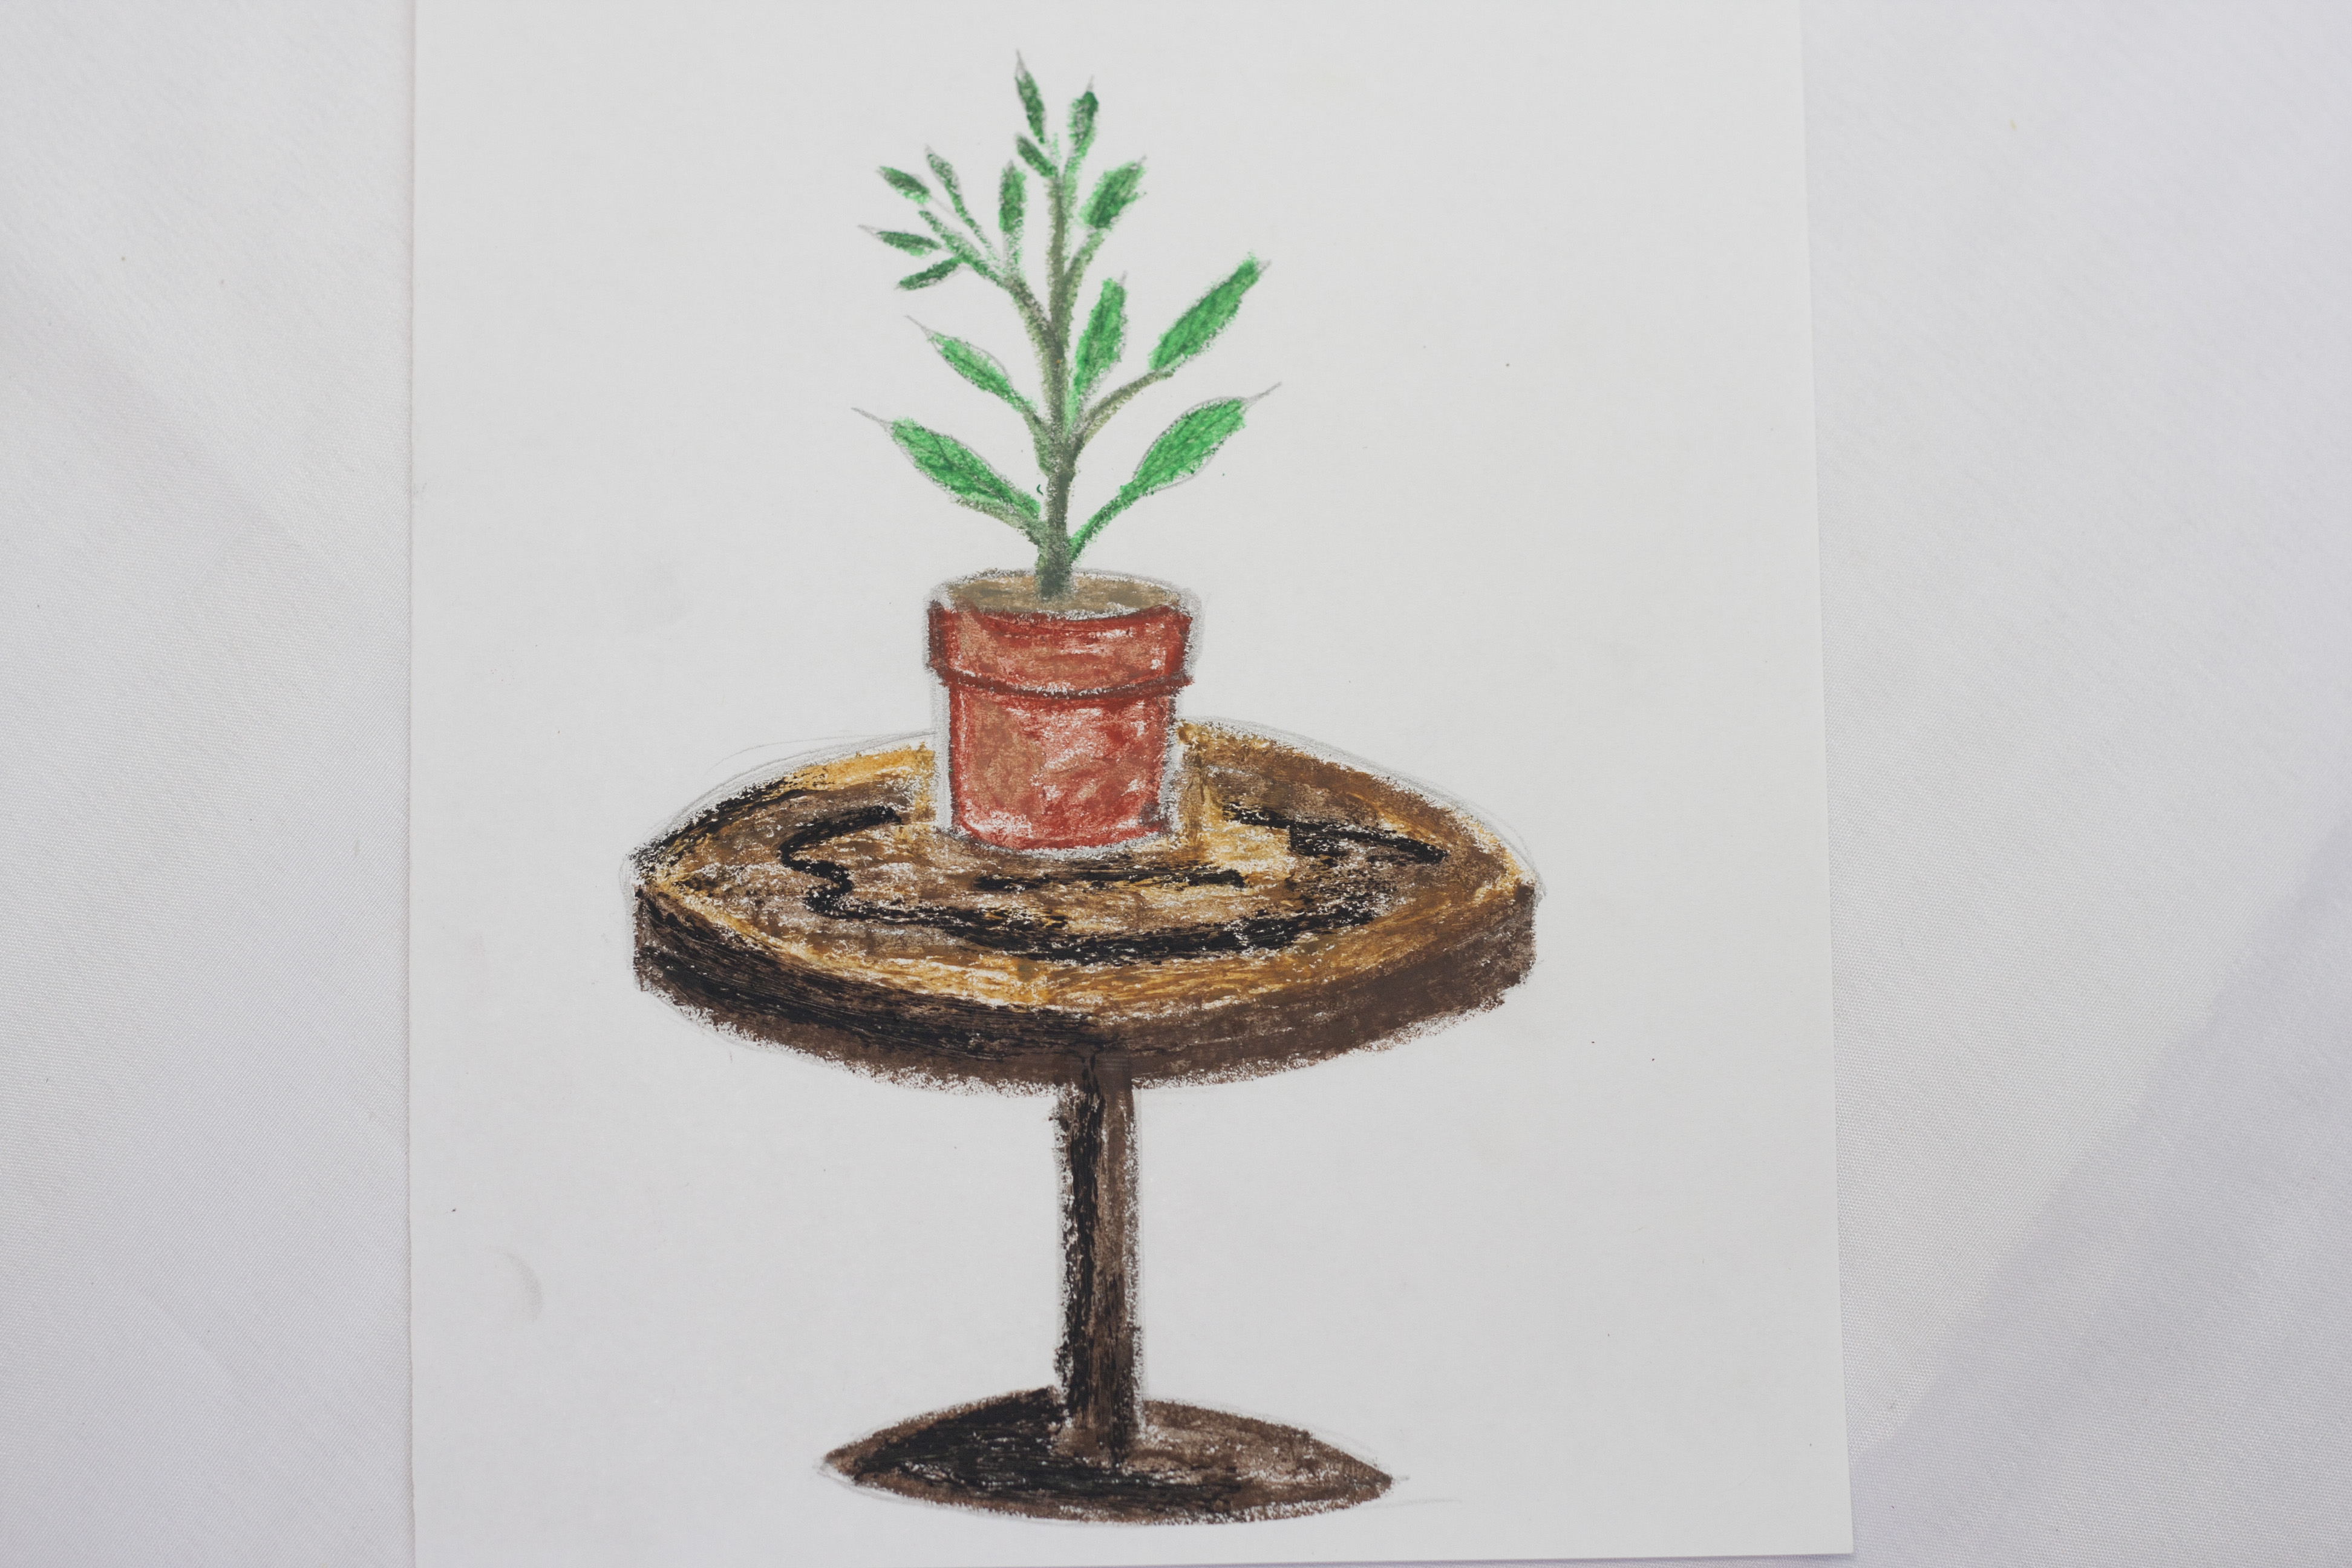 3888x2592 How To Draw A Potted Plant 8 Steps (With Pictures)